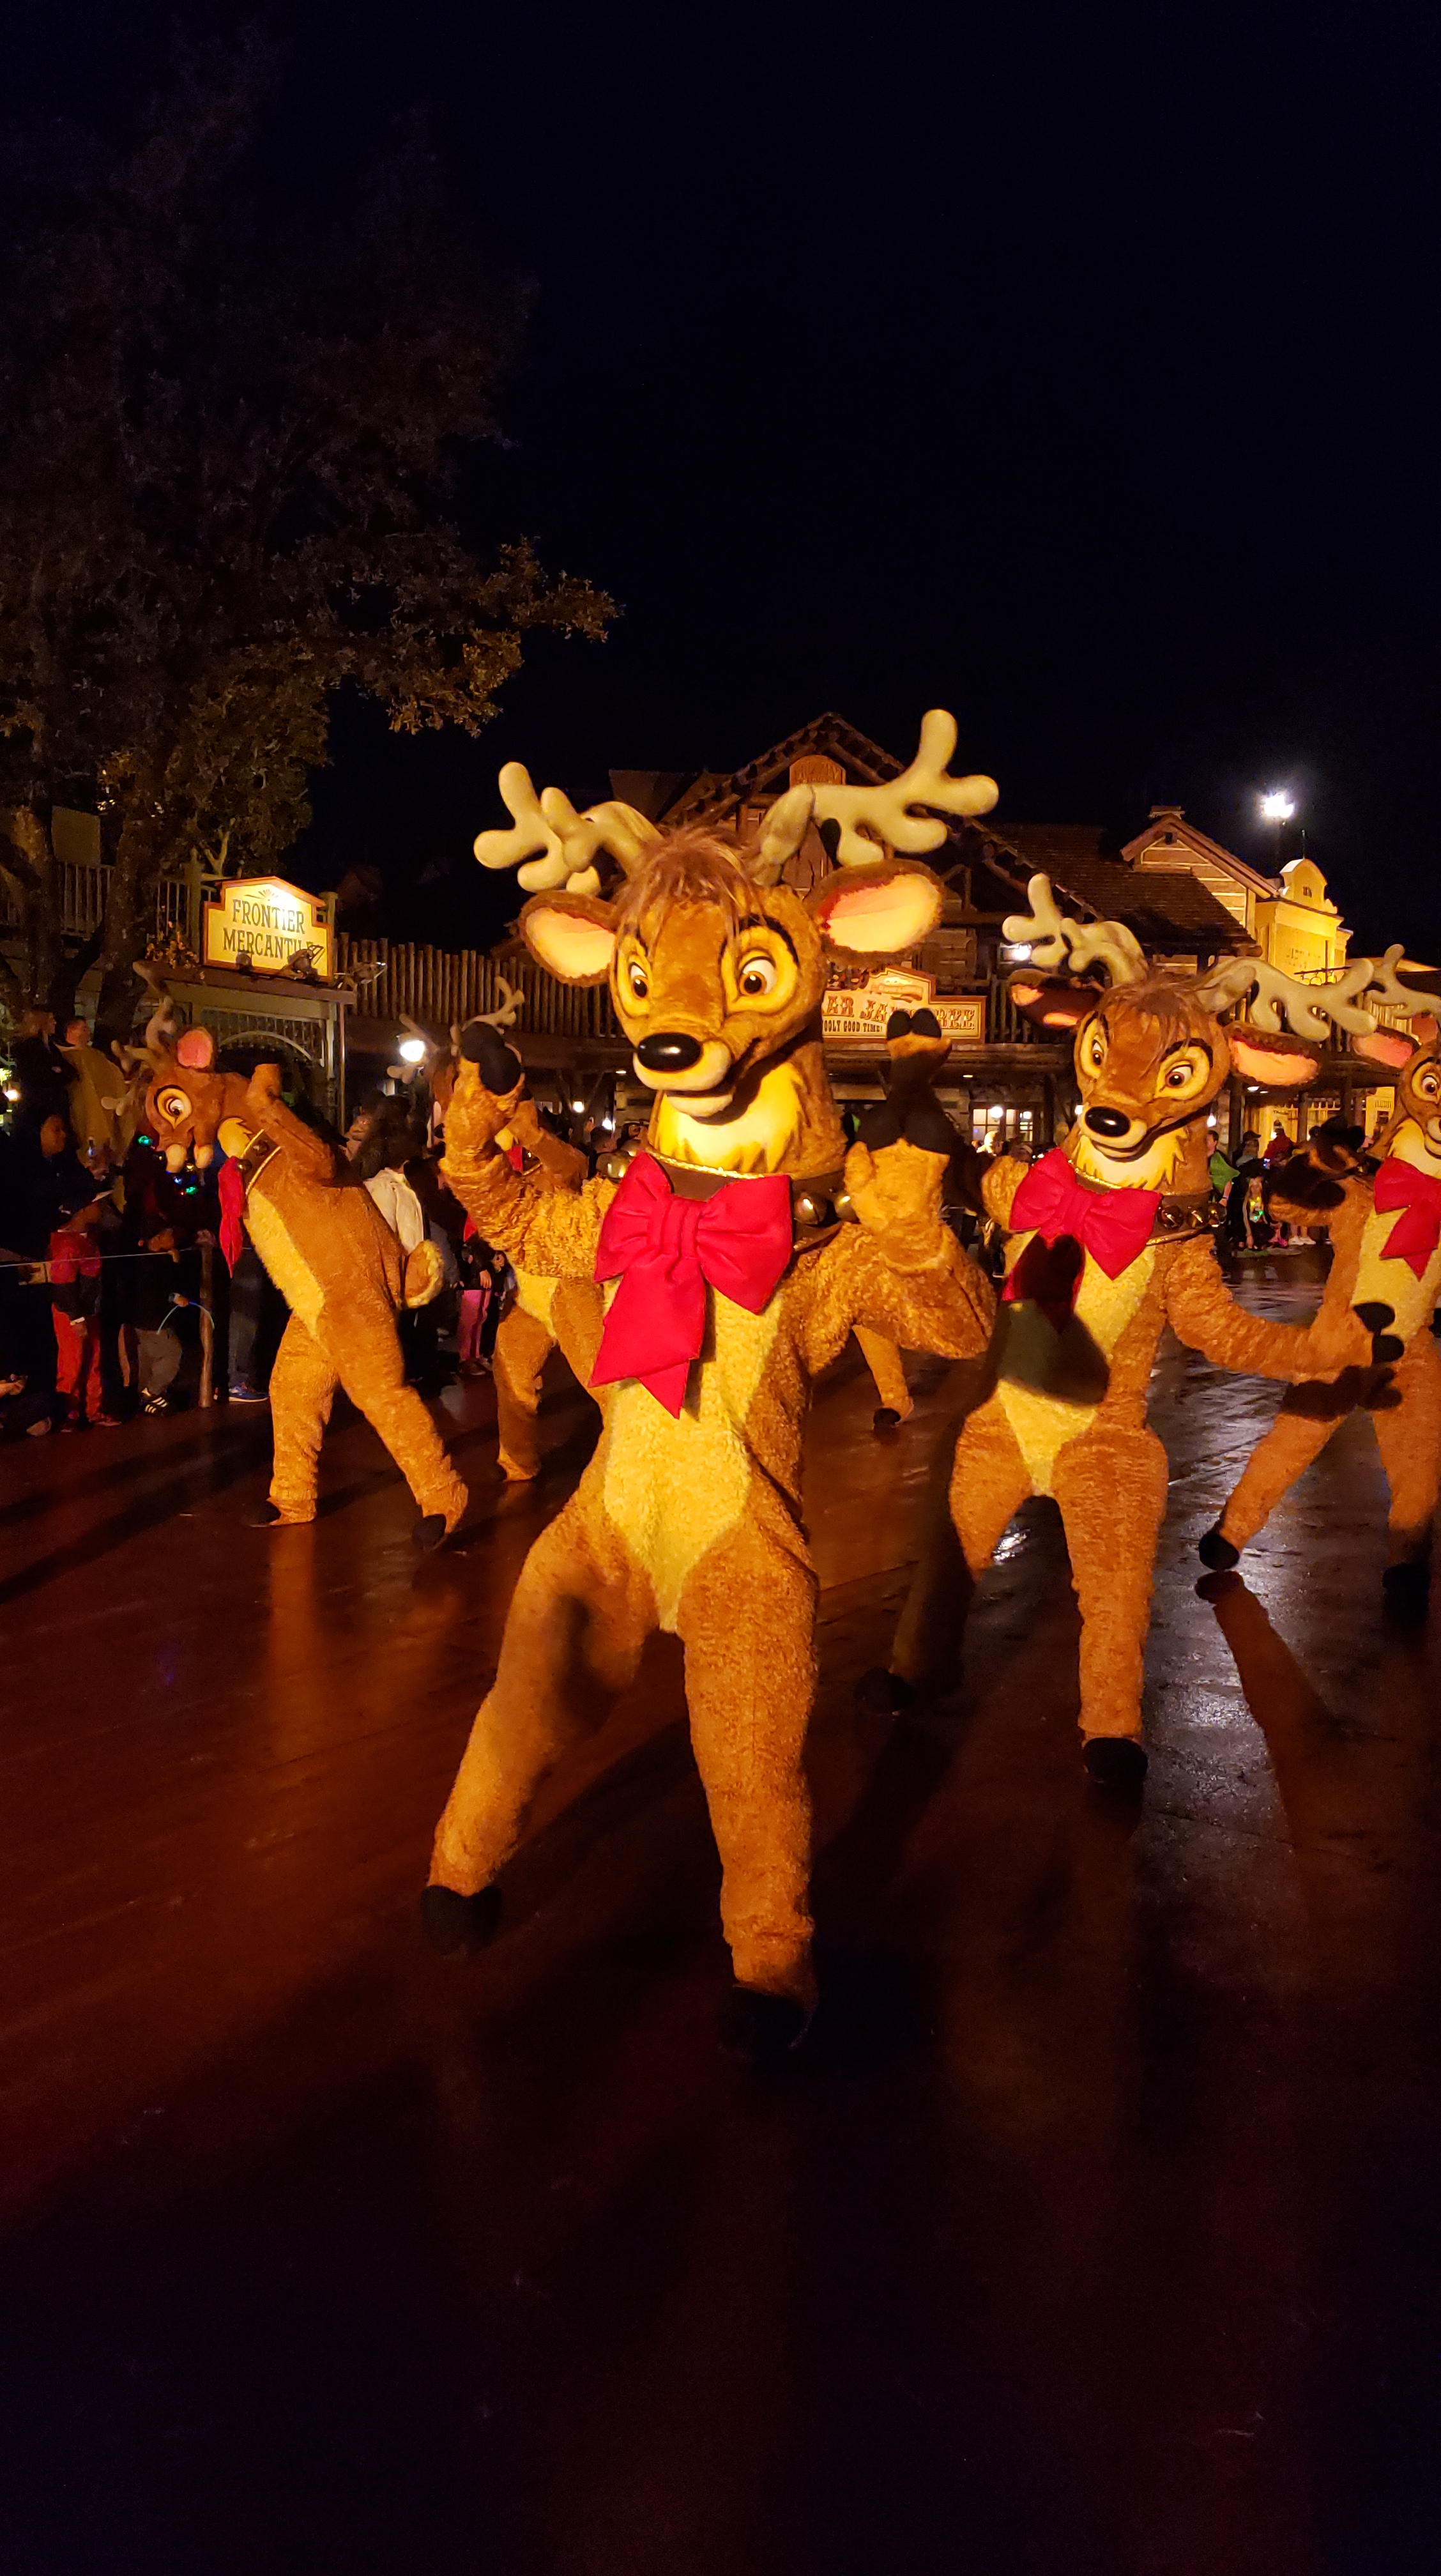 Reindeers in the parade